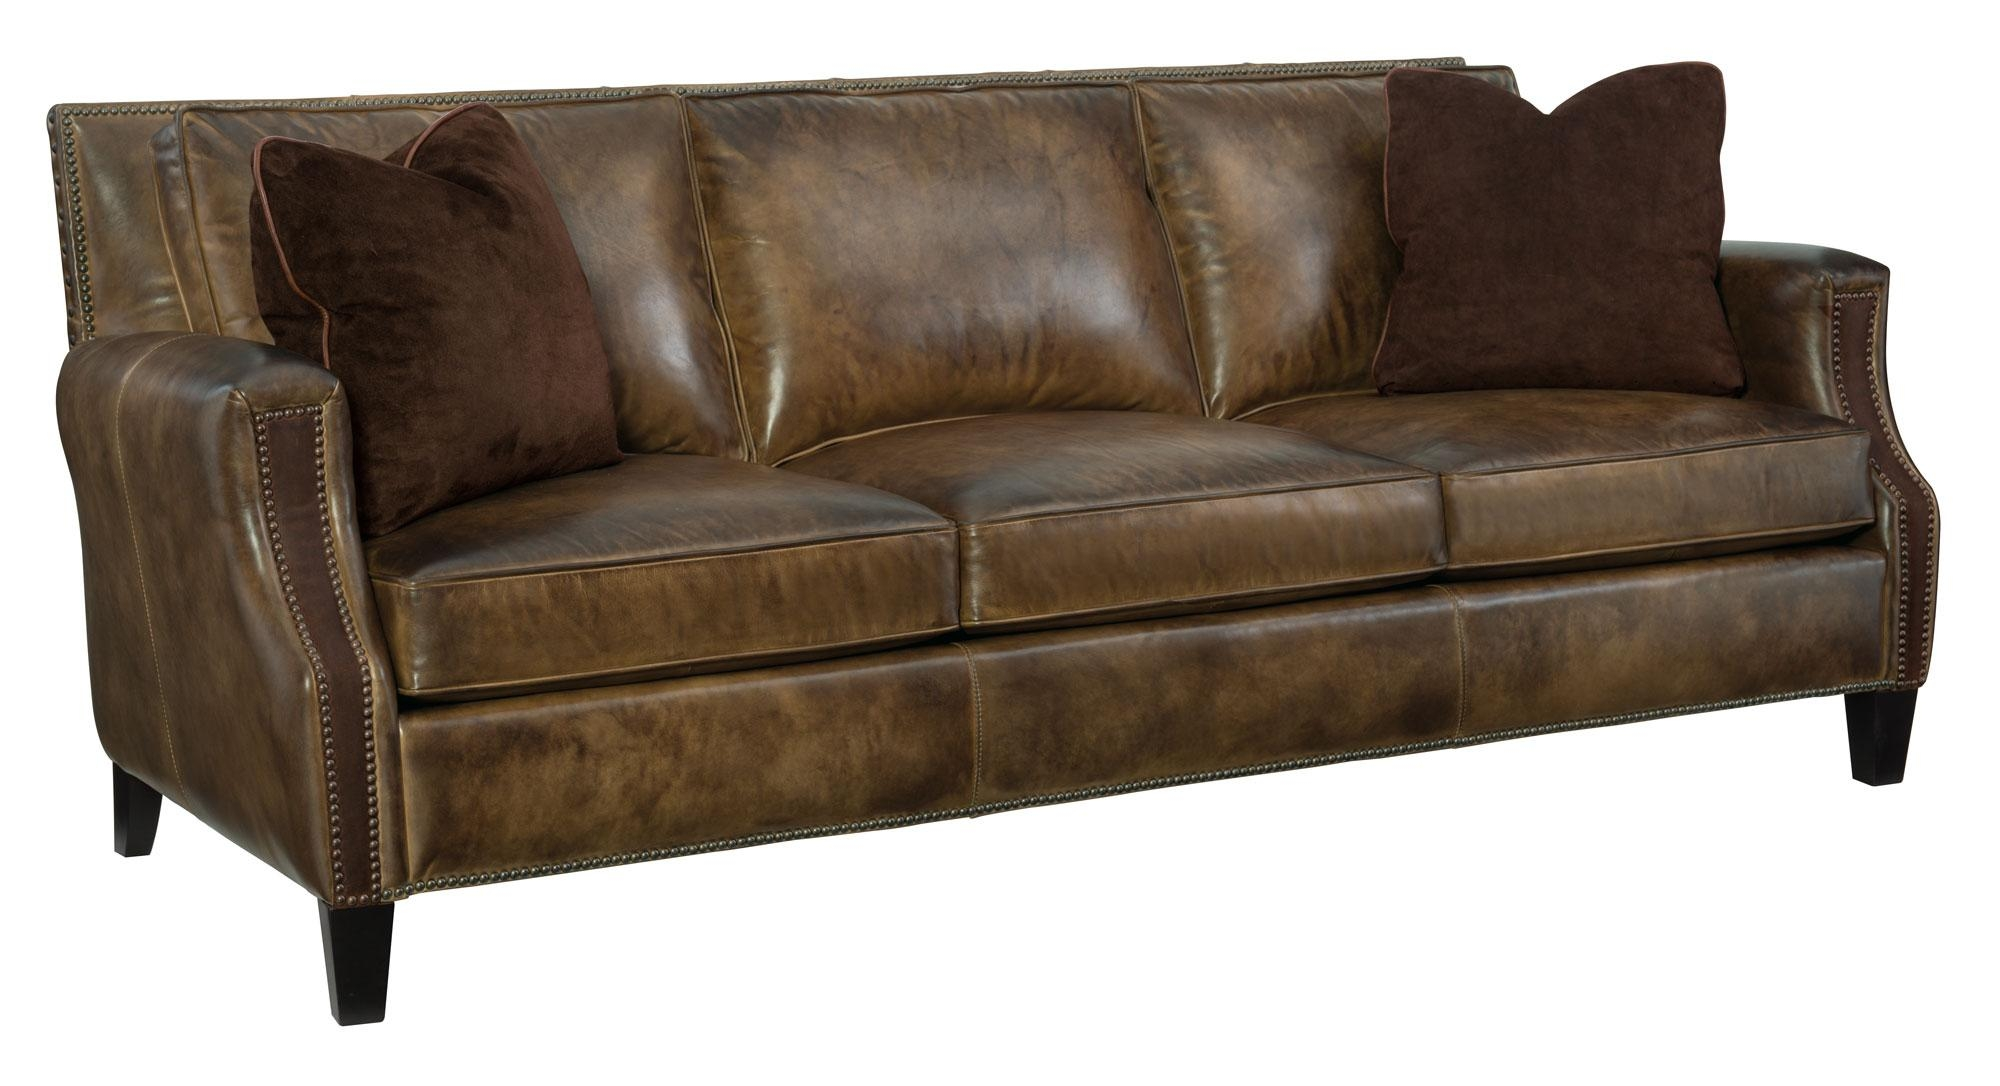 Express Program | Bernhardt With Regard To Foster Leather Sofas (Image 11 of 20)